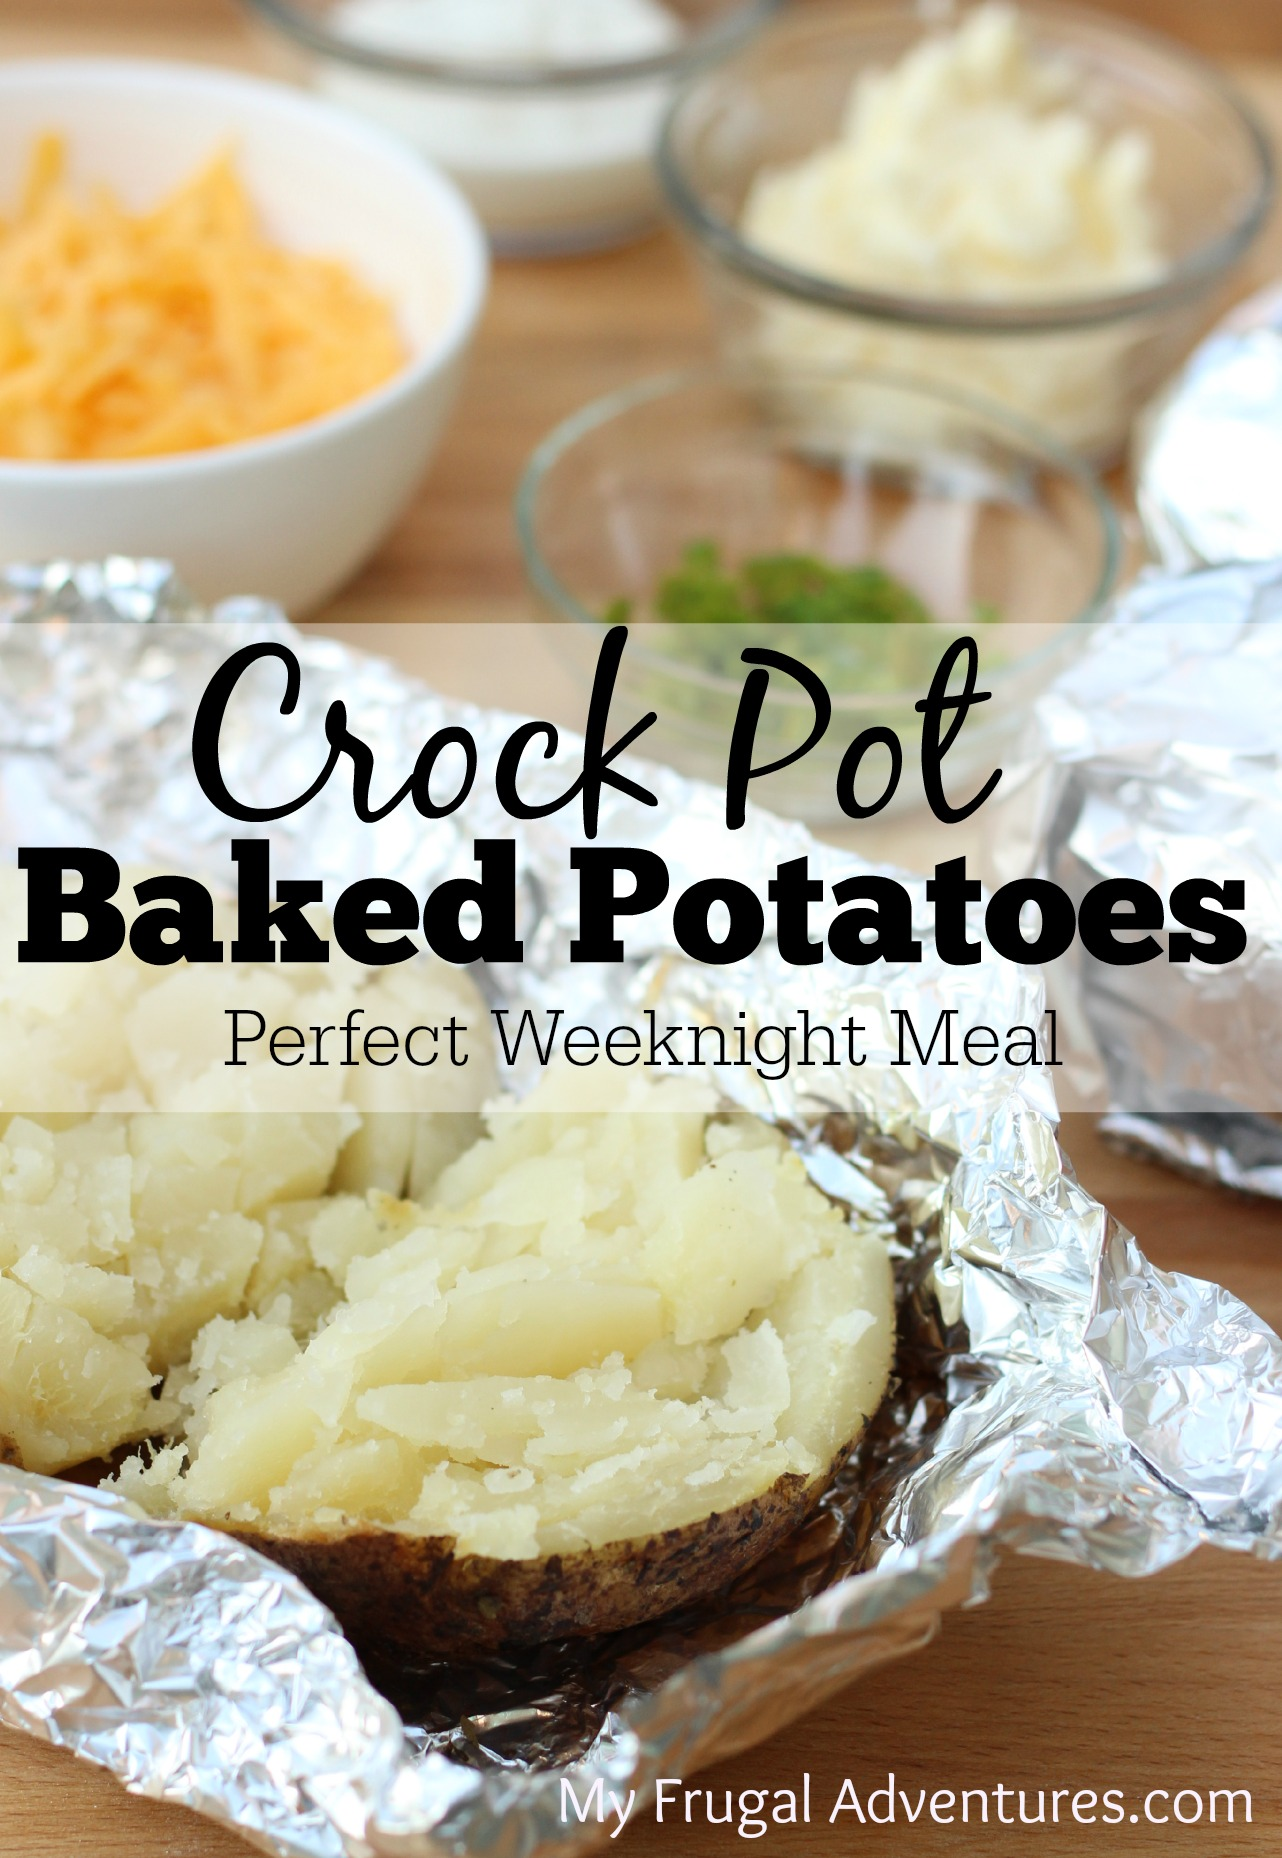 Crock Pot Baked Potatoes - My Frugal Adventures